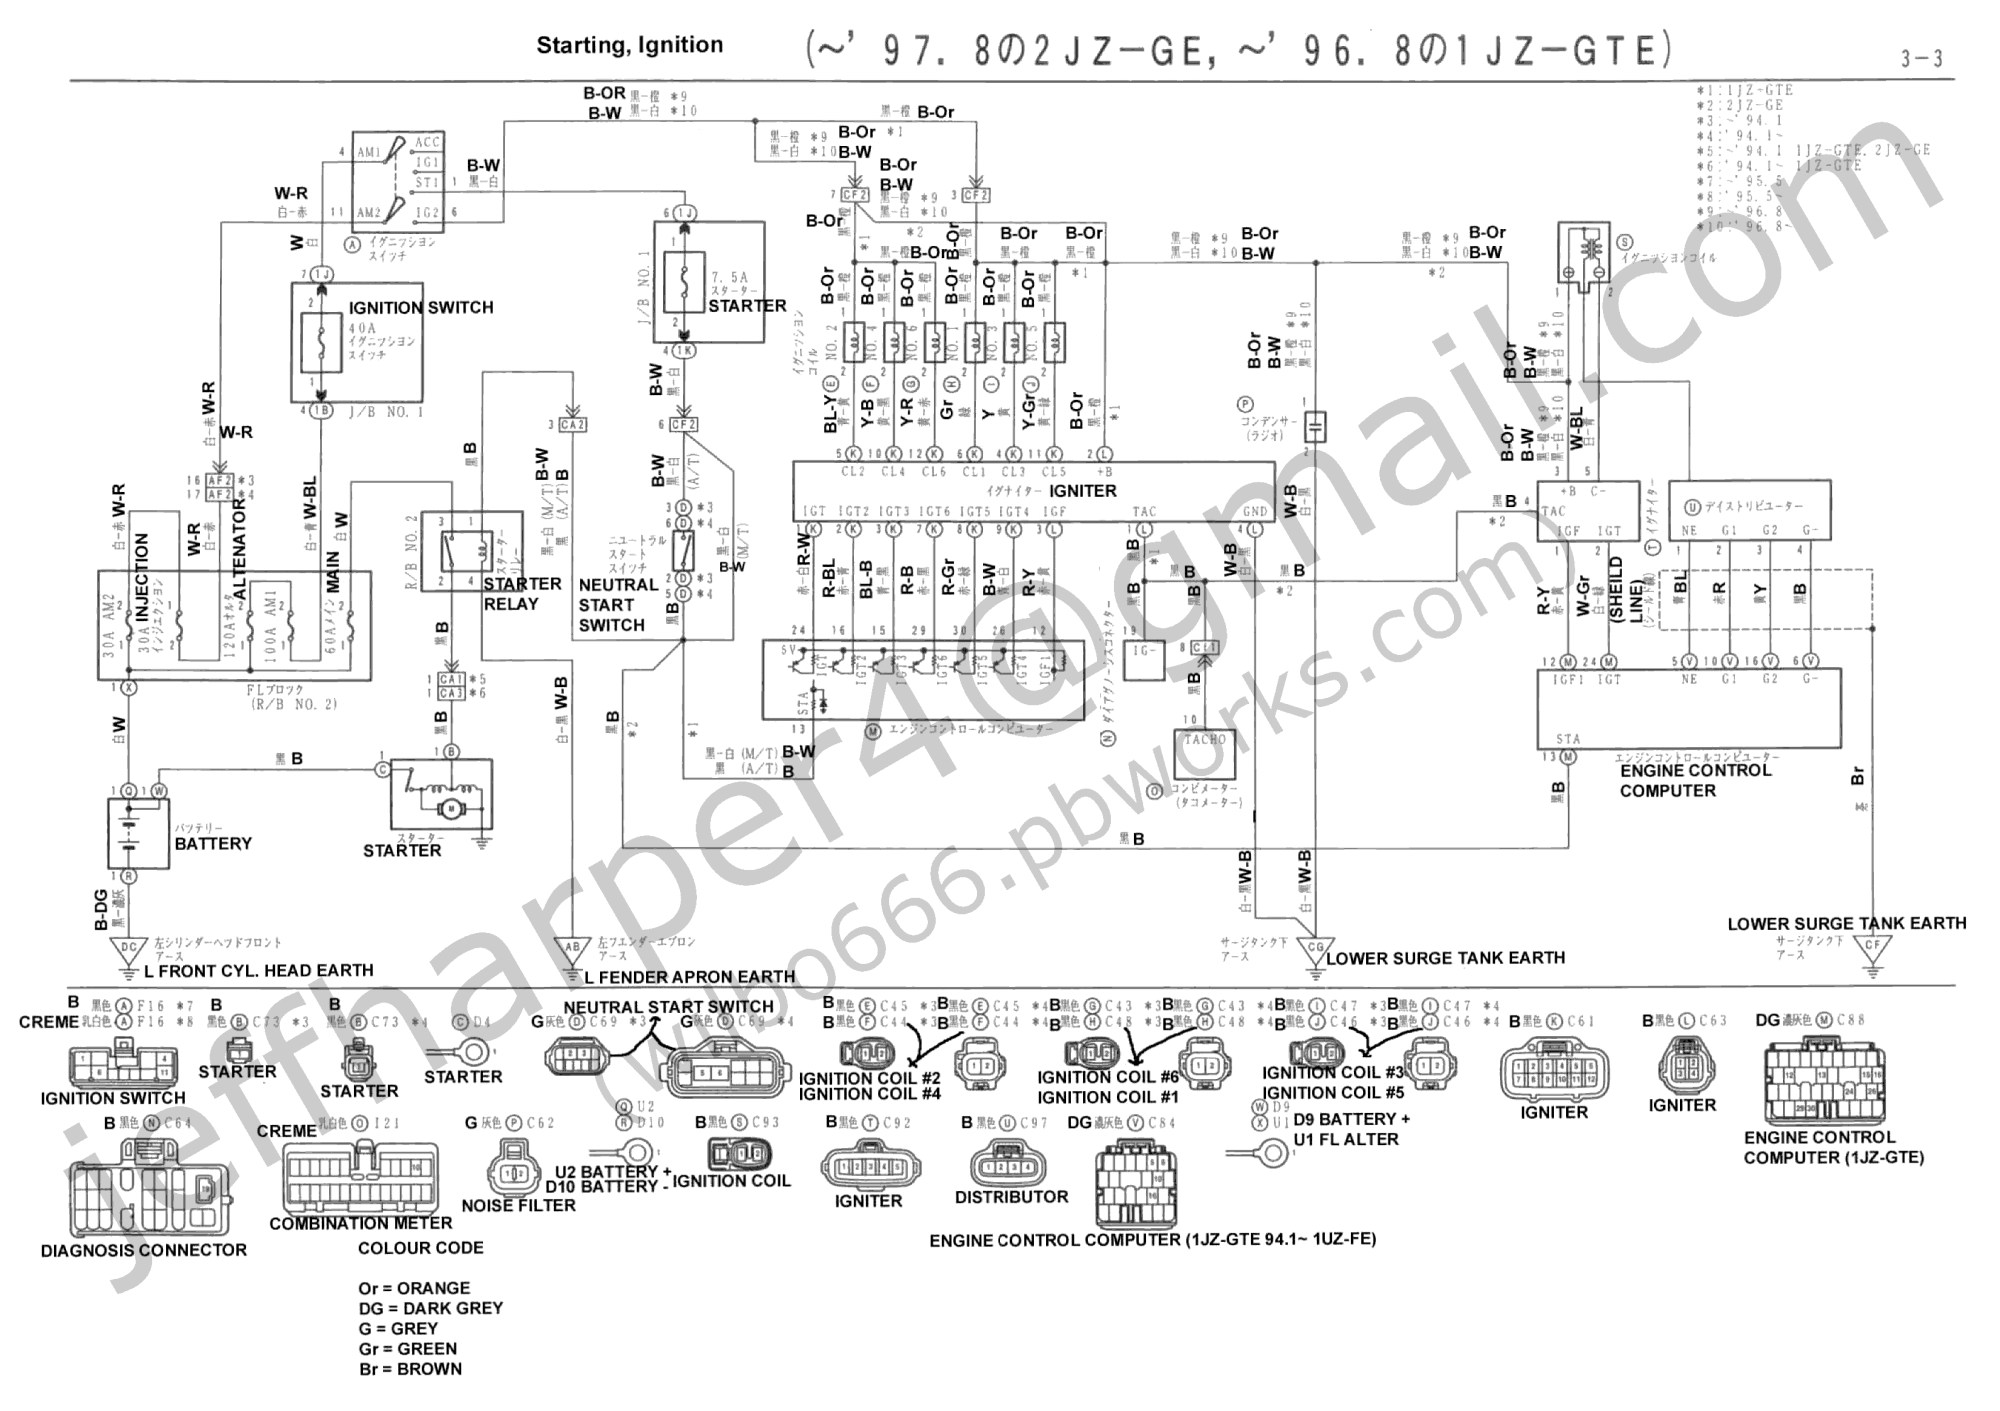 hight resolution of 8 parking sensor wiring diagram 8 parking sensor wiring diagram xzz3x electrical wiring d 3